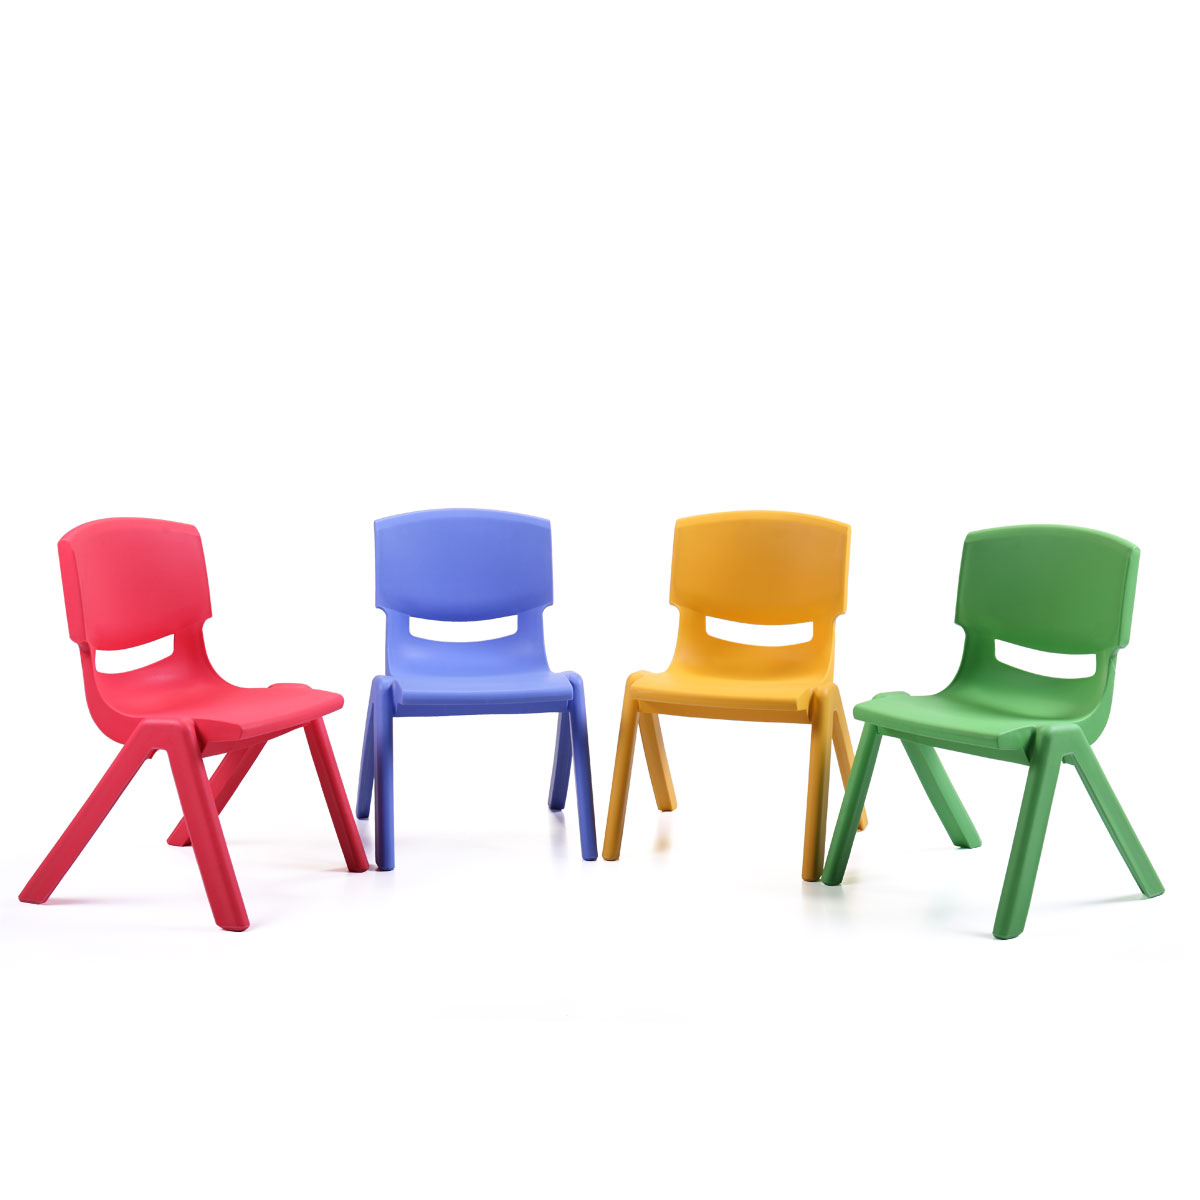 4 Pack Multicolored Kid Plastic Stacking Chair Solid Kids Play Furniture